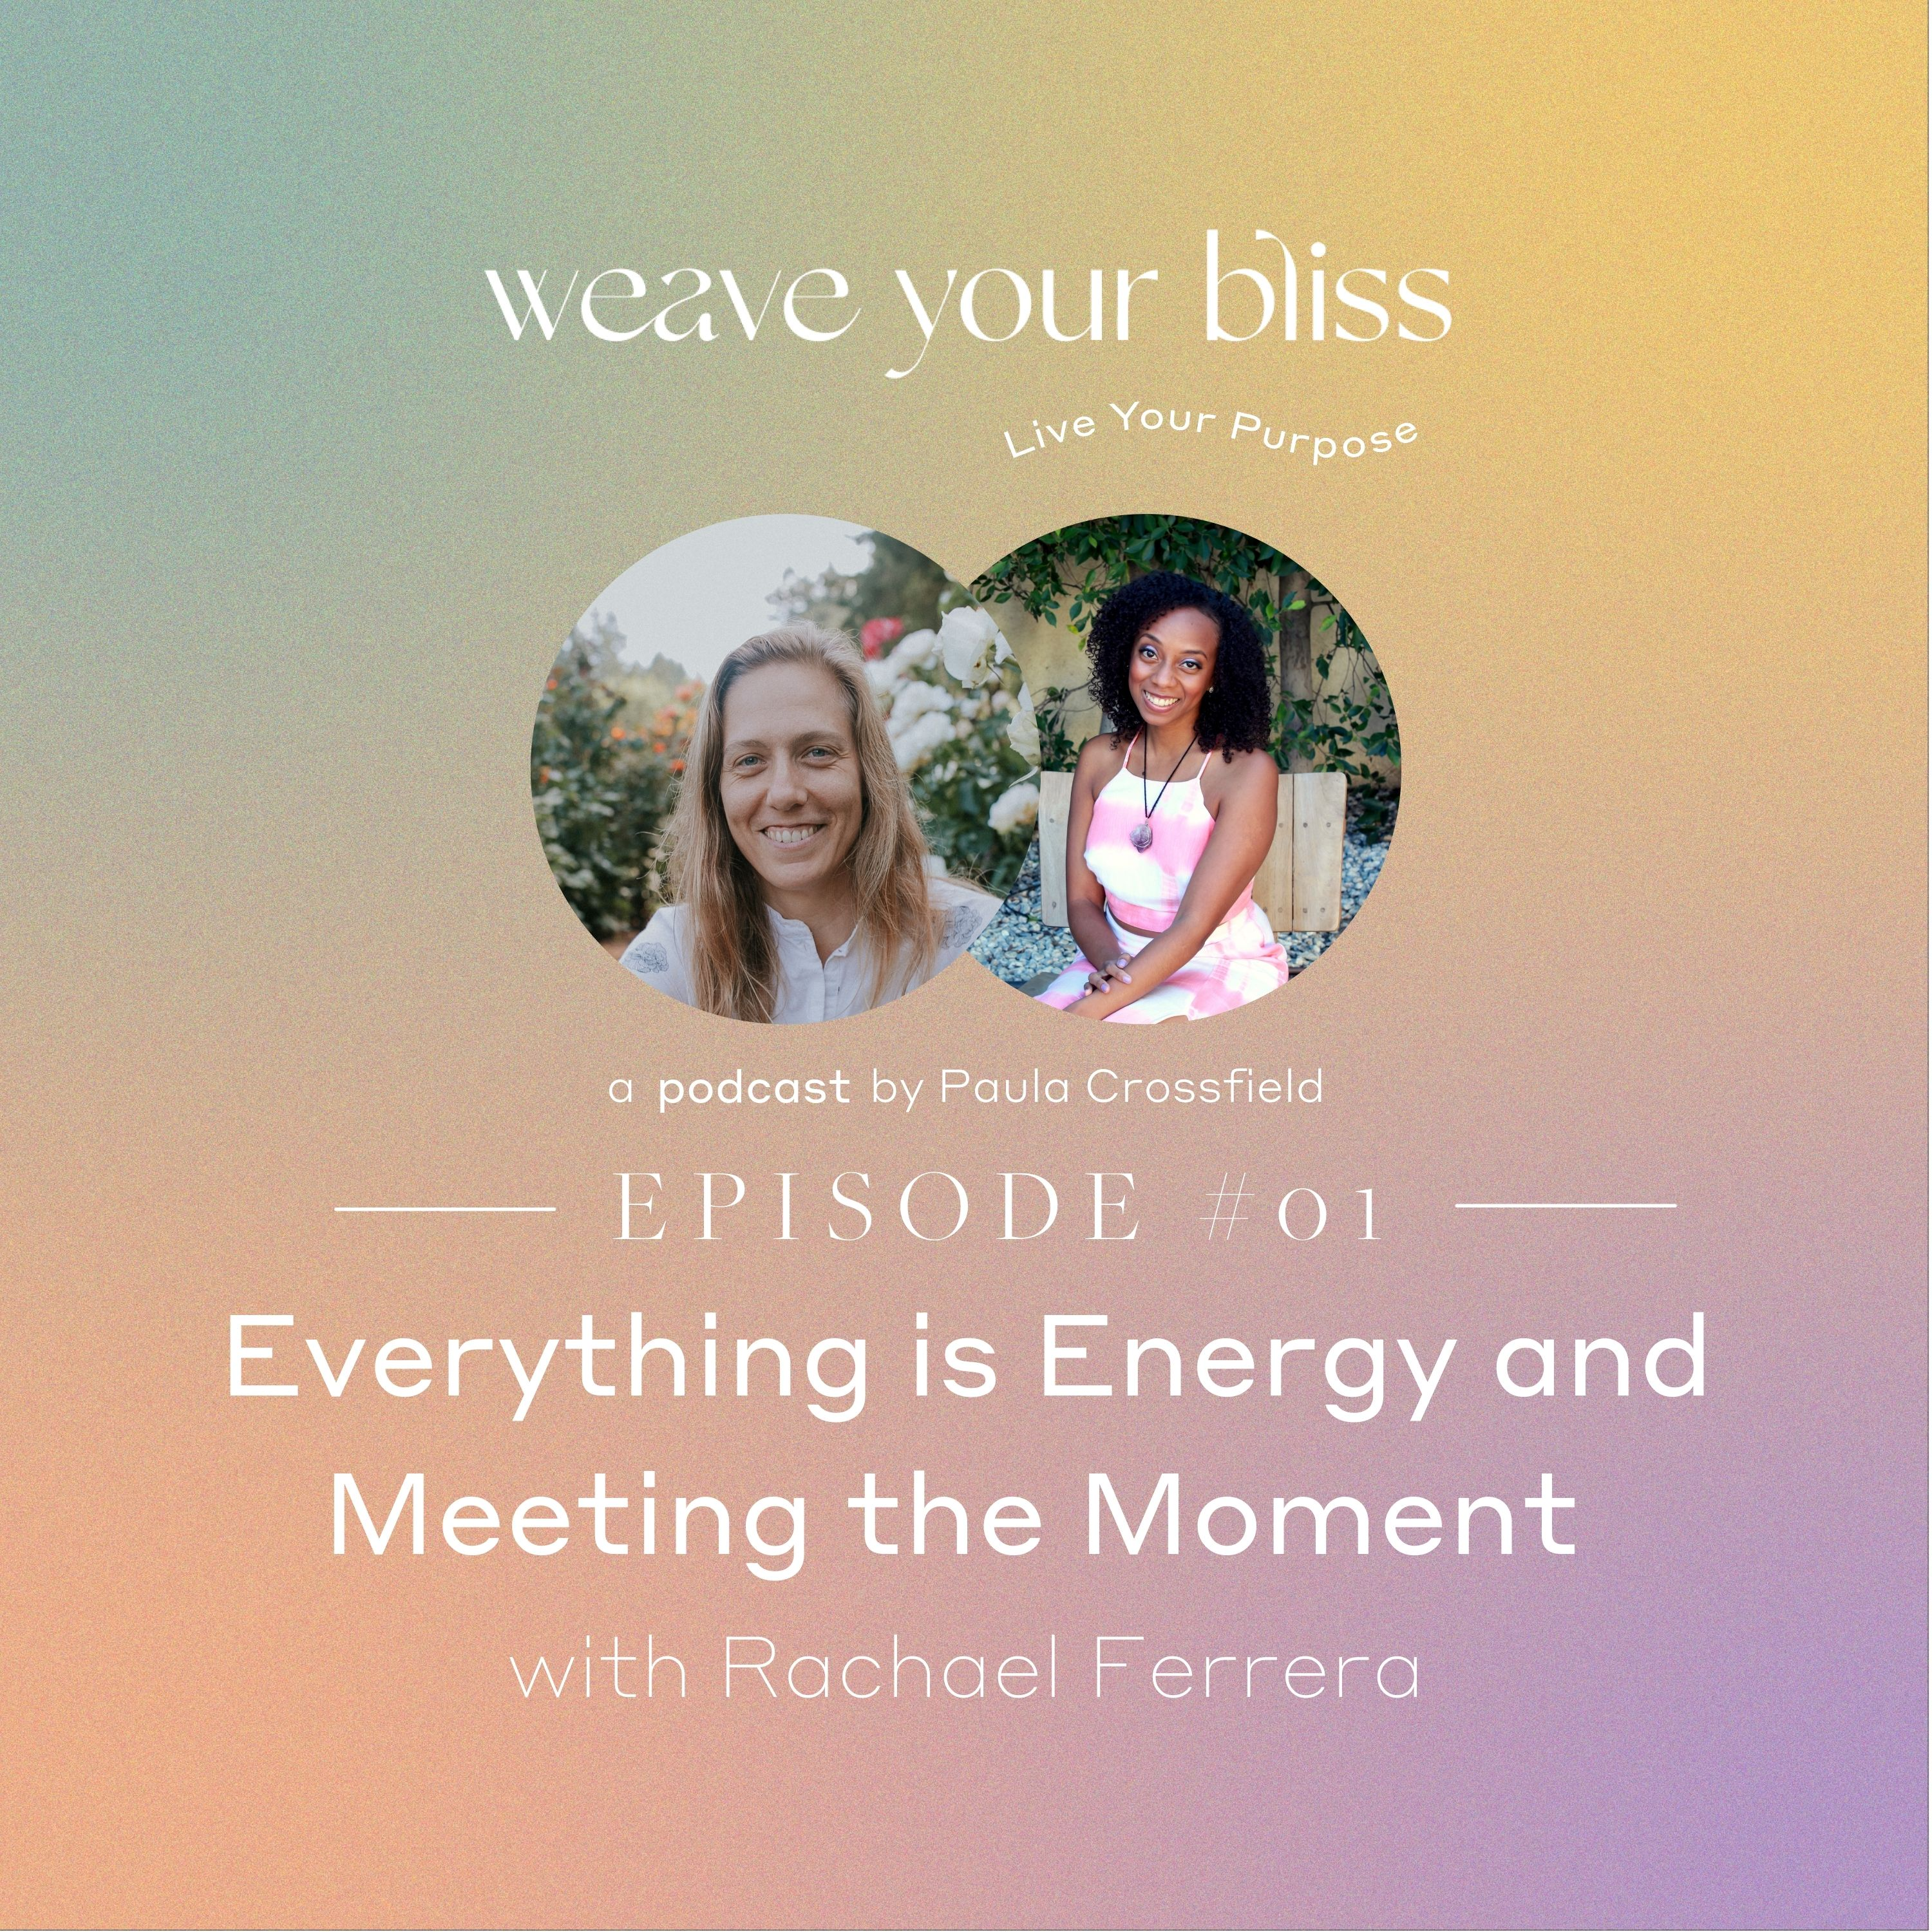 01: Everything is Energy and Meeting the Moment with Rachael Ferrera